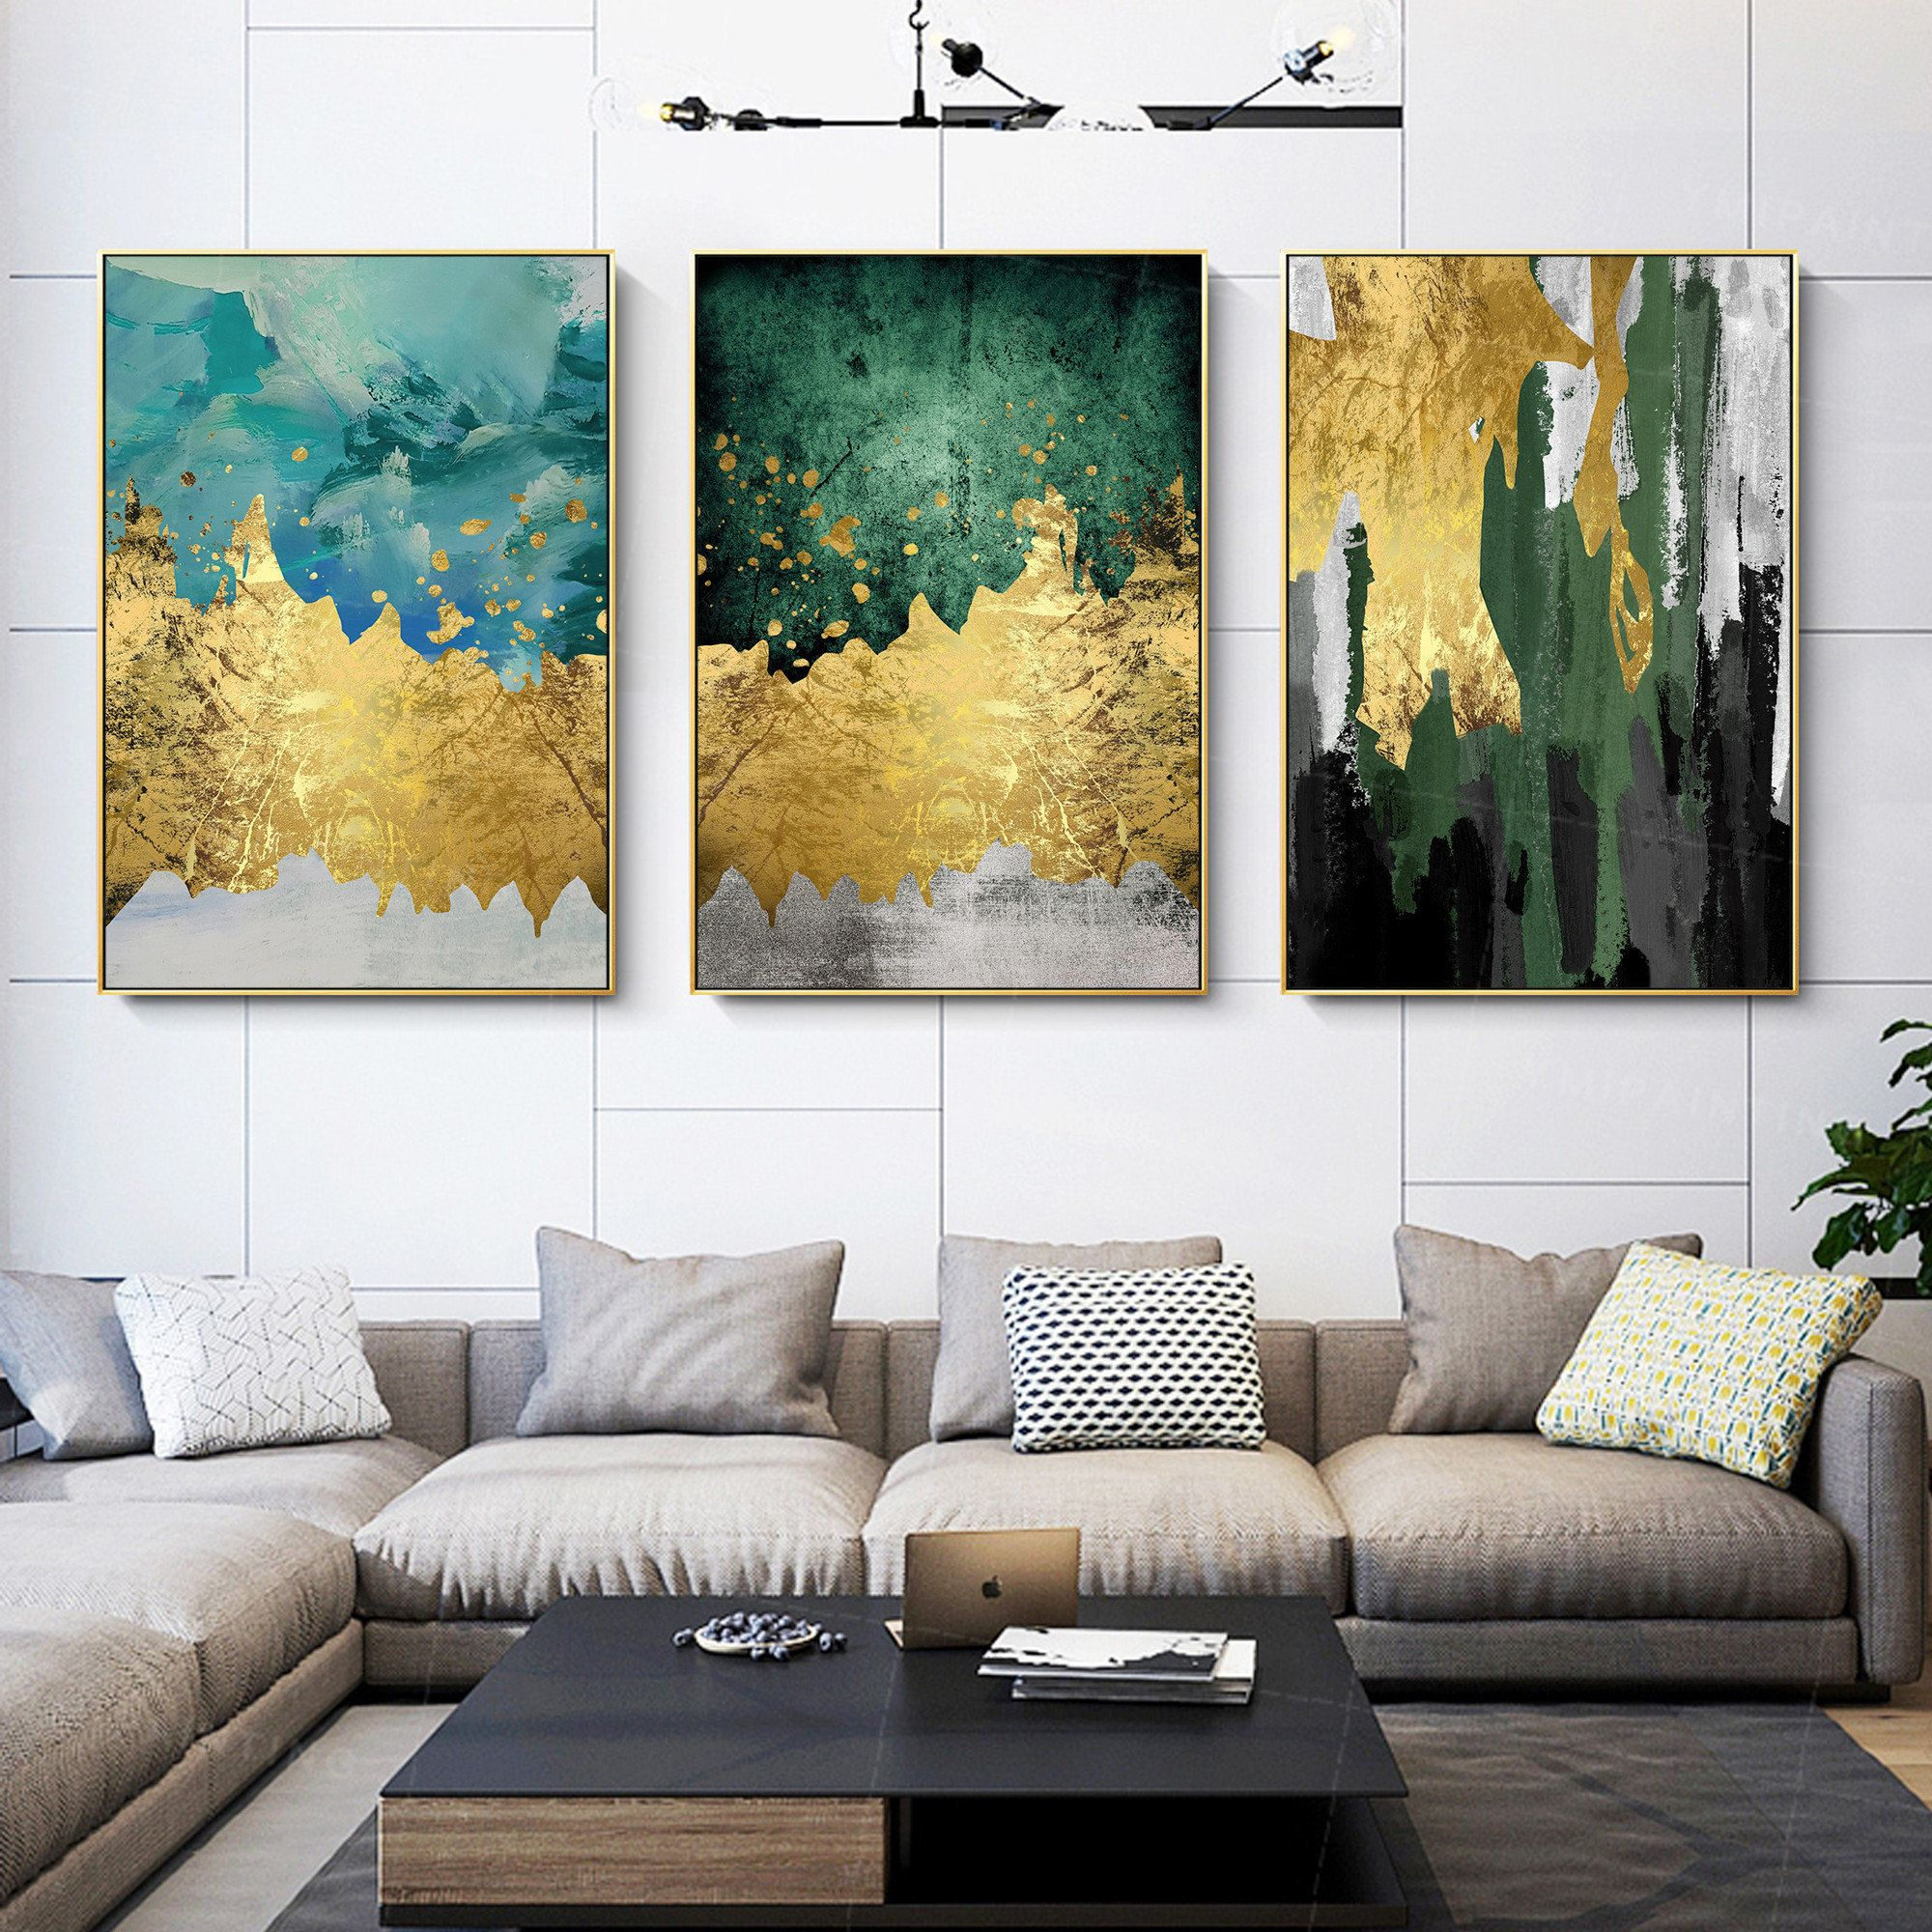 Gold Leaf Framed Painting Set Of 3 Wall Art Gold Art Acrylic Etsy In 2021 Painting Frames Wall Art Gold Leaf Wall Canvas Painting